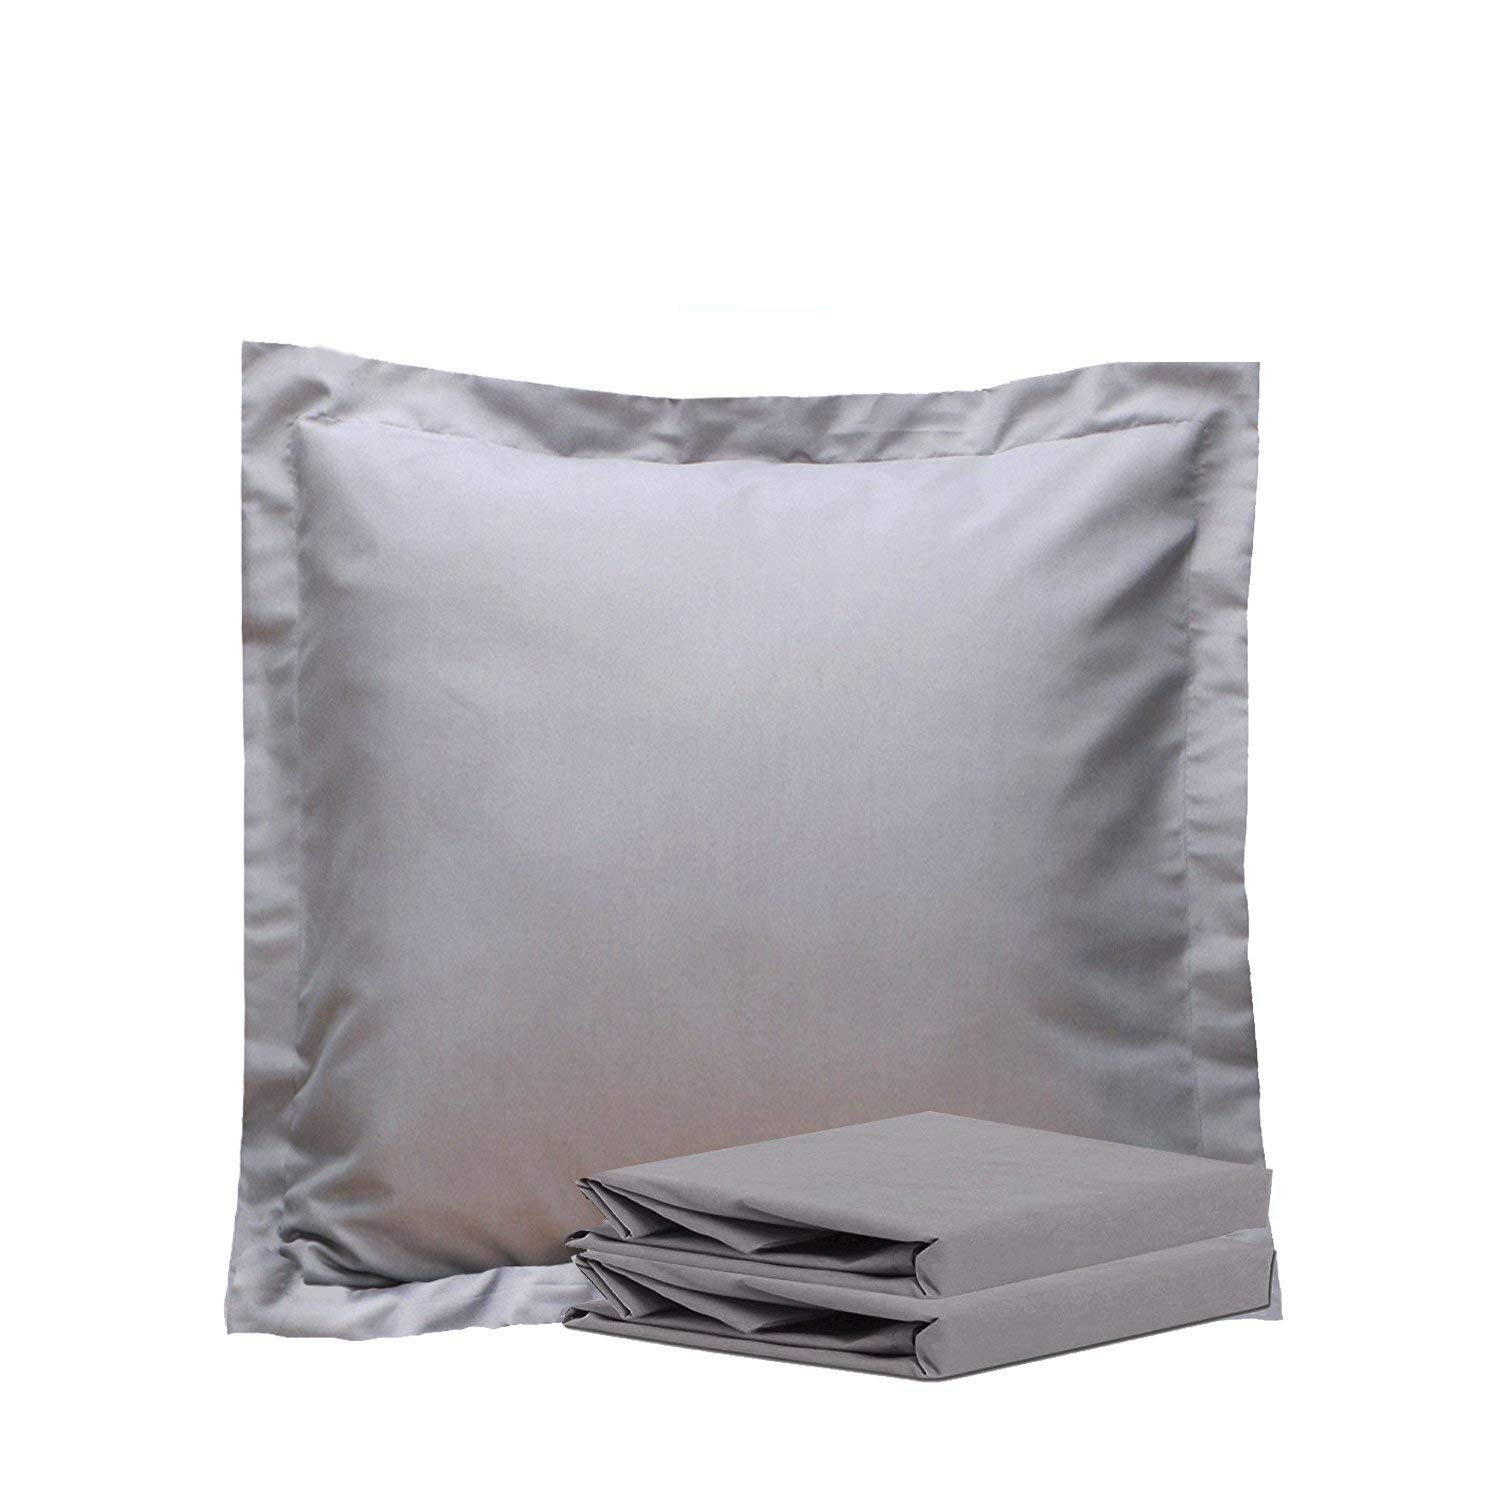 NTBAY 100% Brushed Microfiber Throw Pillow Cushion Cover Set of 2, Euro Pillow Shams, Soft and Cozy, Wrinkle, Fade, Stain Resistant (Euro 26''x26'', Smoky Grey)